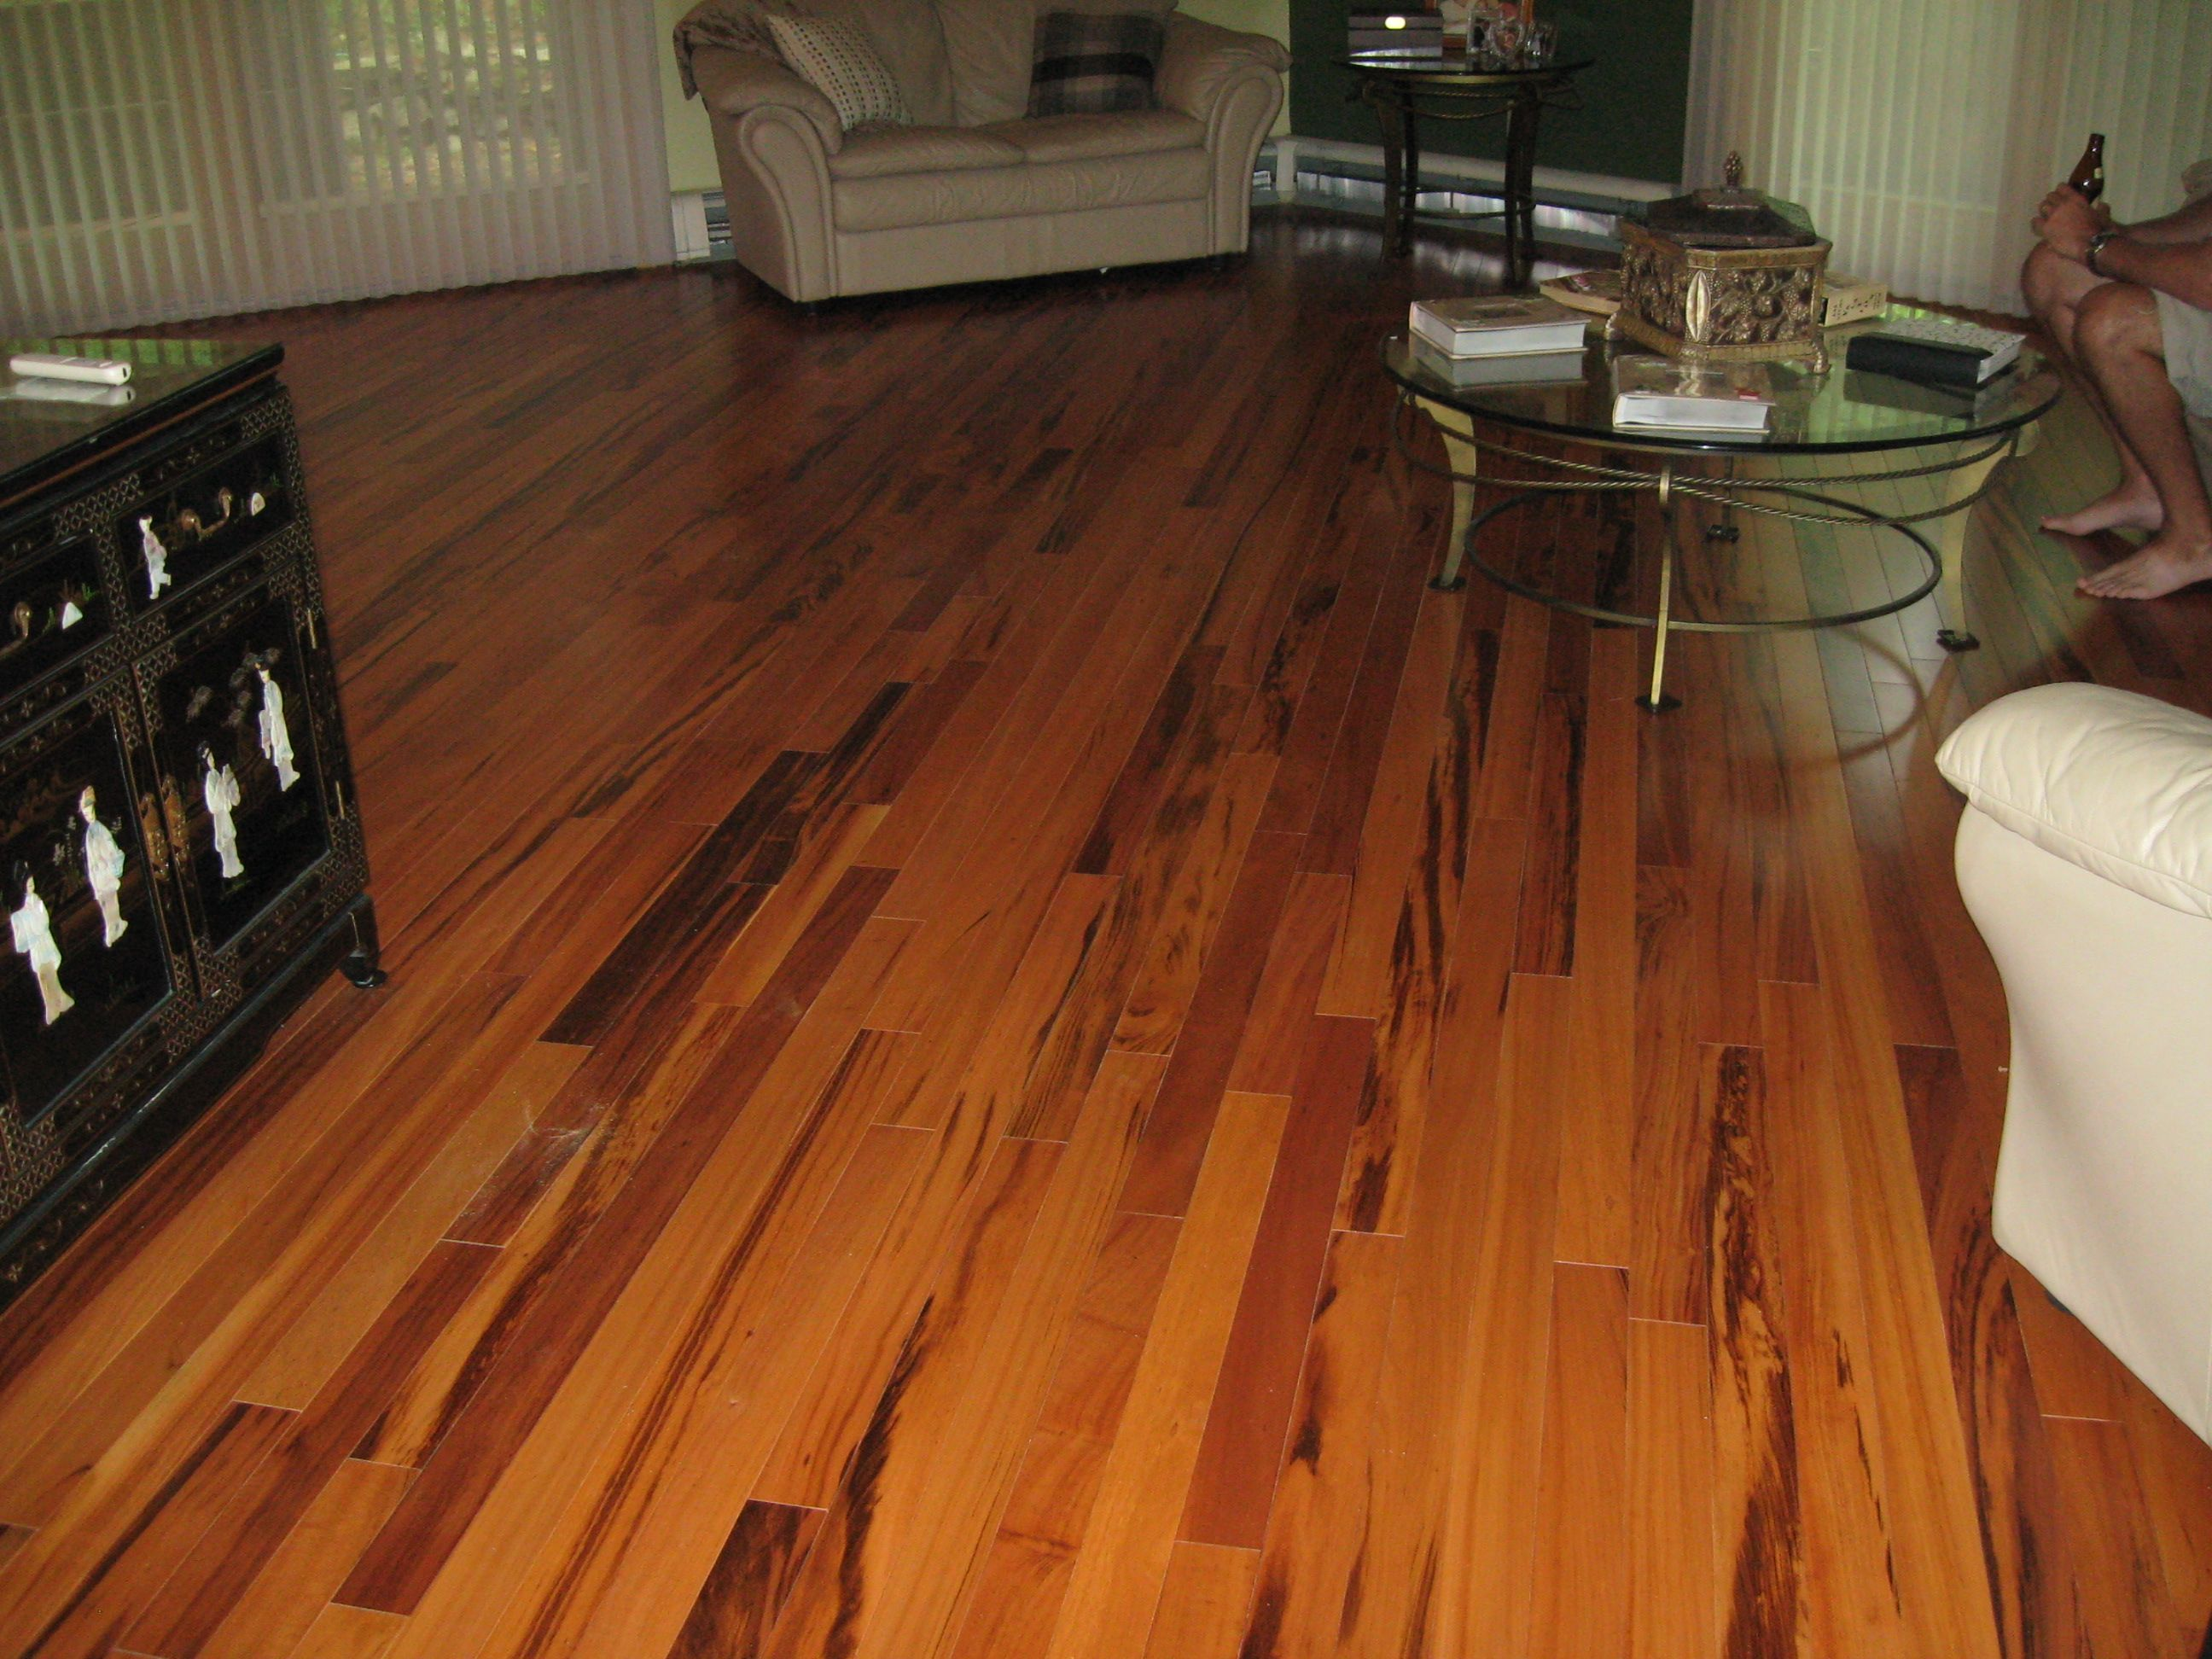 brazilian floor floors hardwoods caring koa pattern design cherry easy dark flooring hardwood